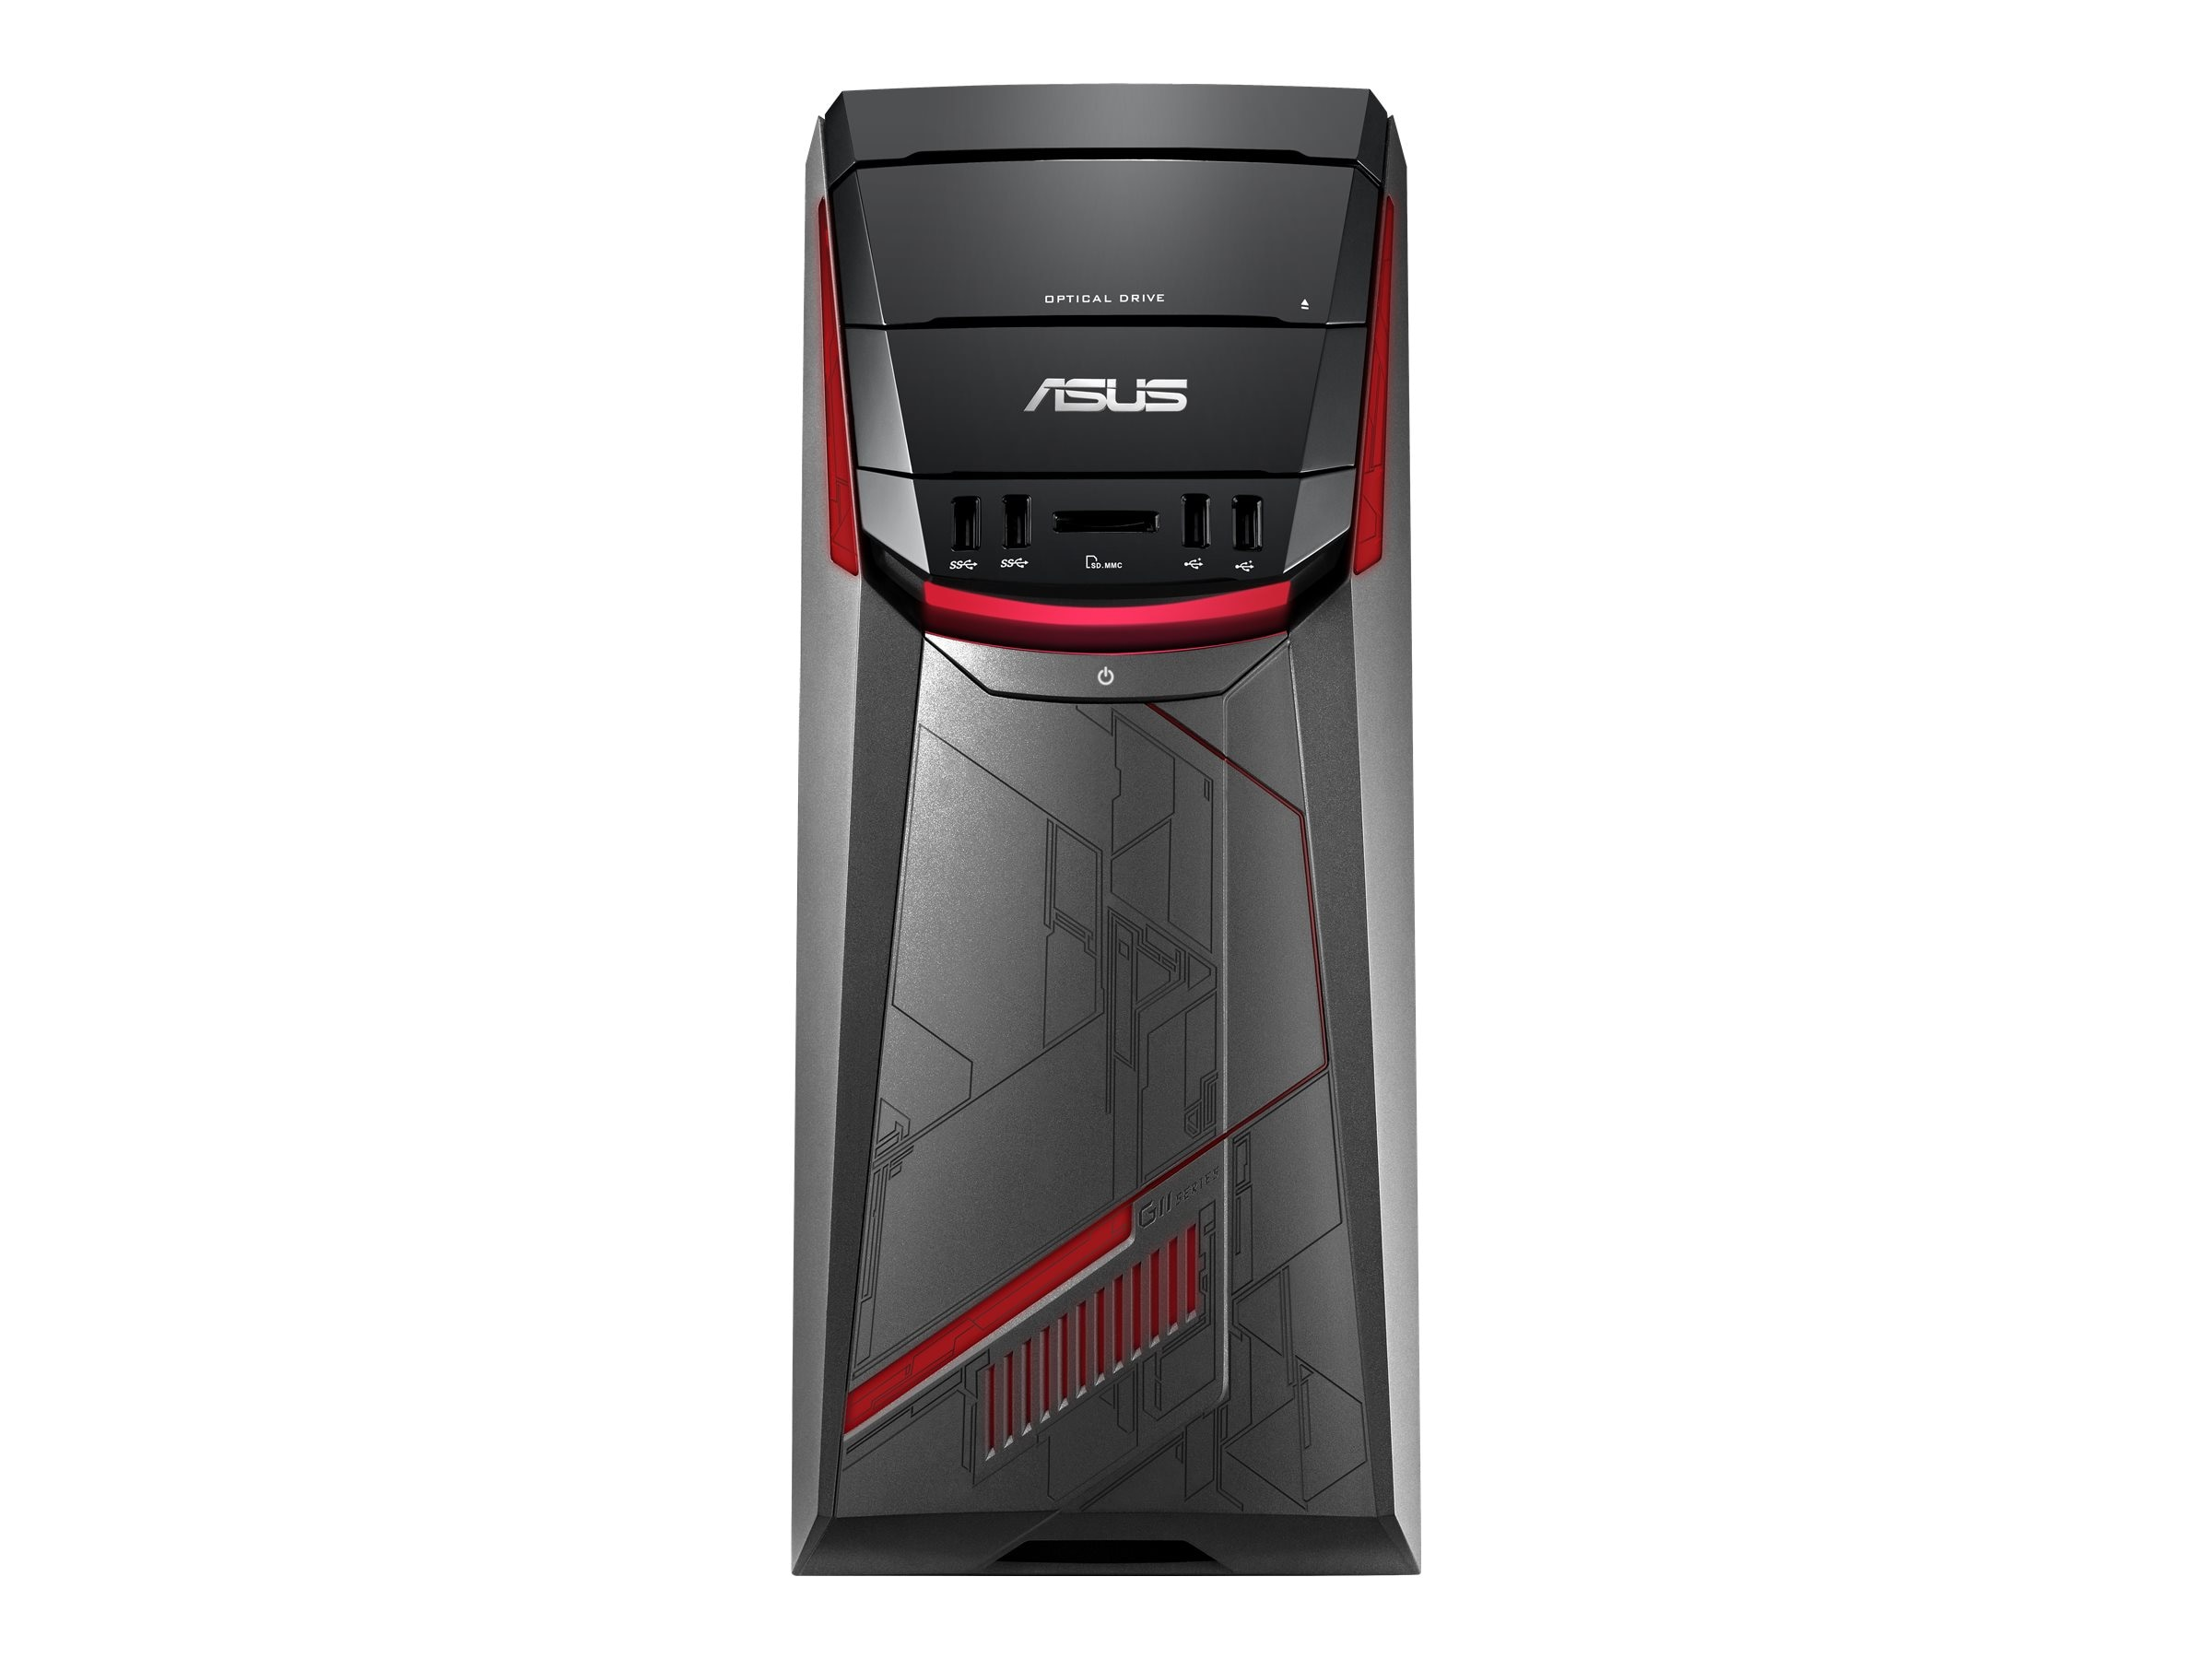 Asus G11CD-EB71 Core i7-6700 3.4GHz 16GB 1TB GTX 960 W10, G11CD-EB71-GTX960